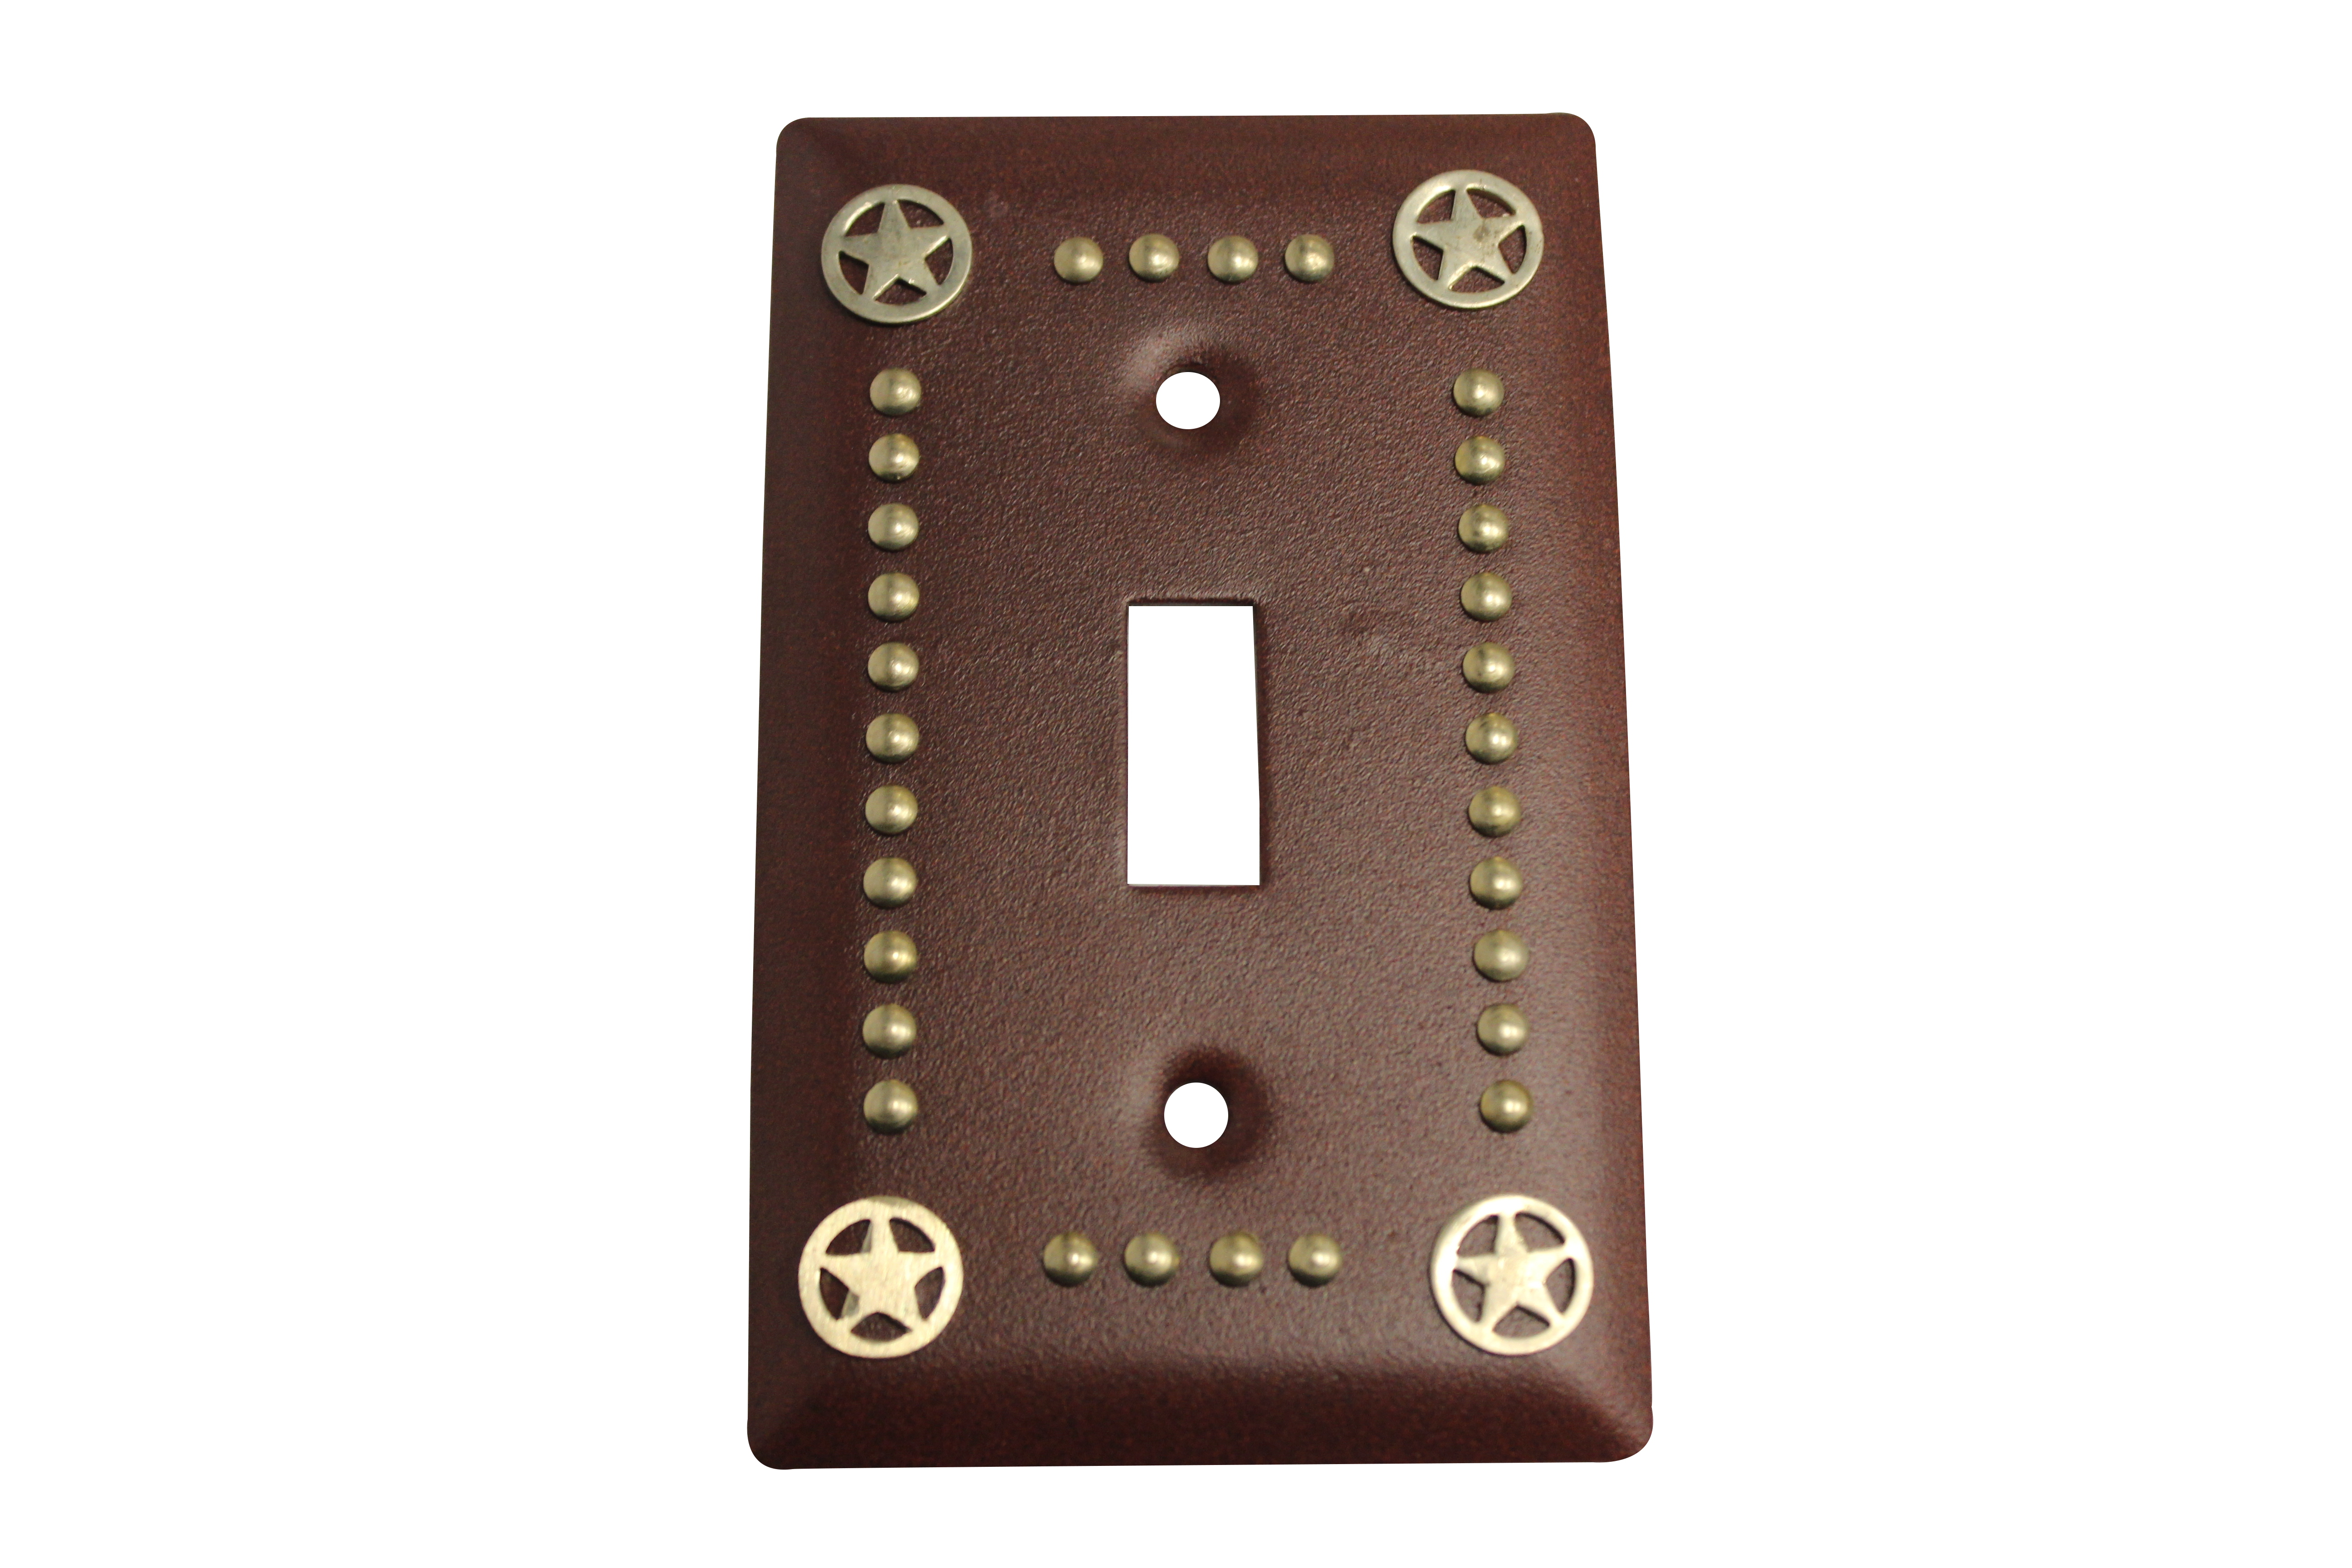 Plate Cover Stars & Dots Single Switch Plate Cover  Antique  Jazz Sales